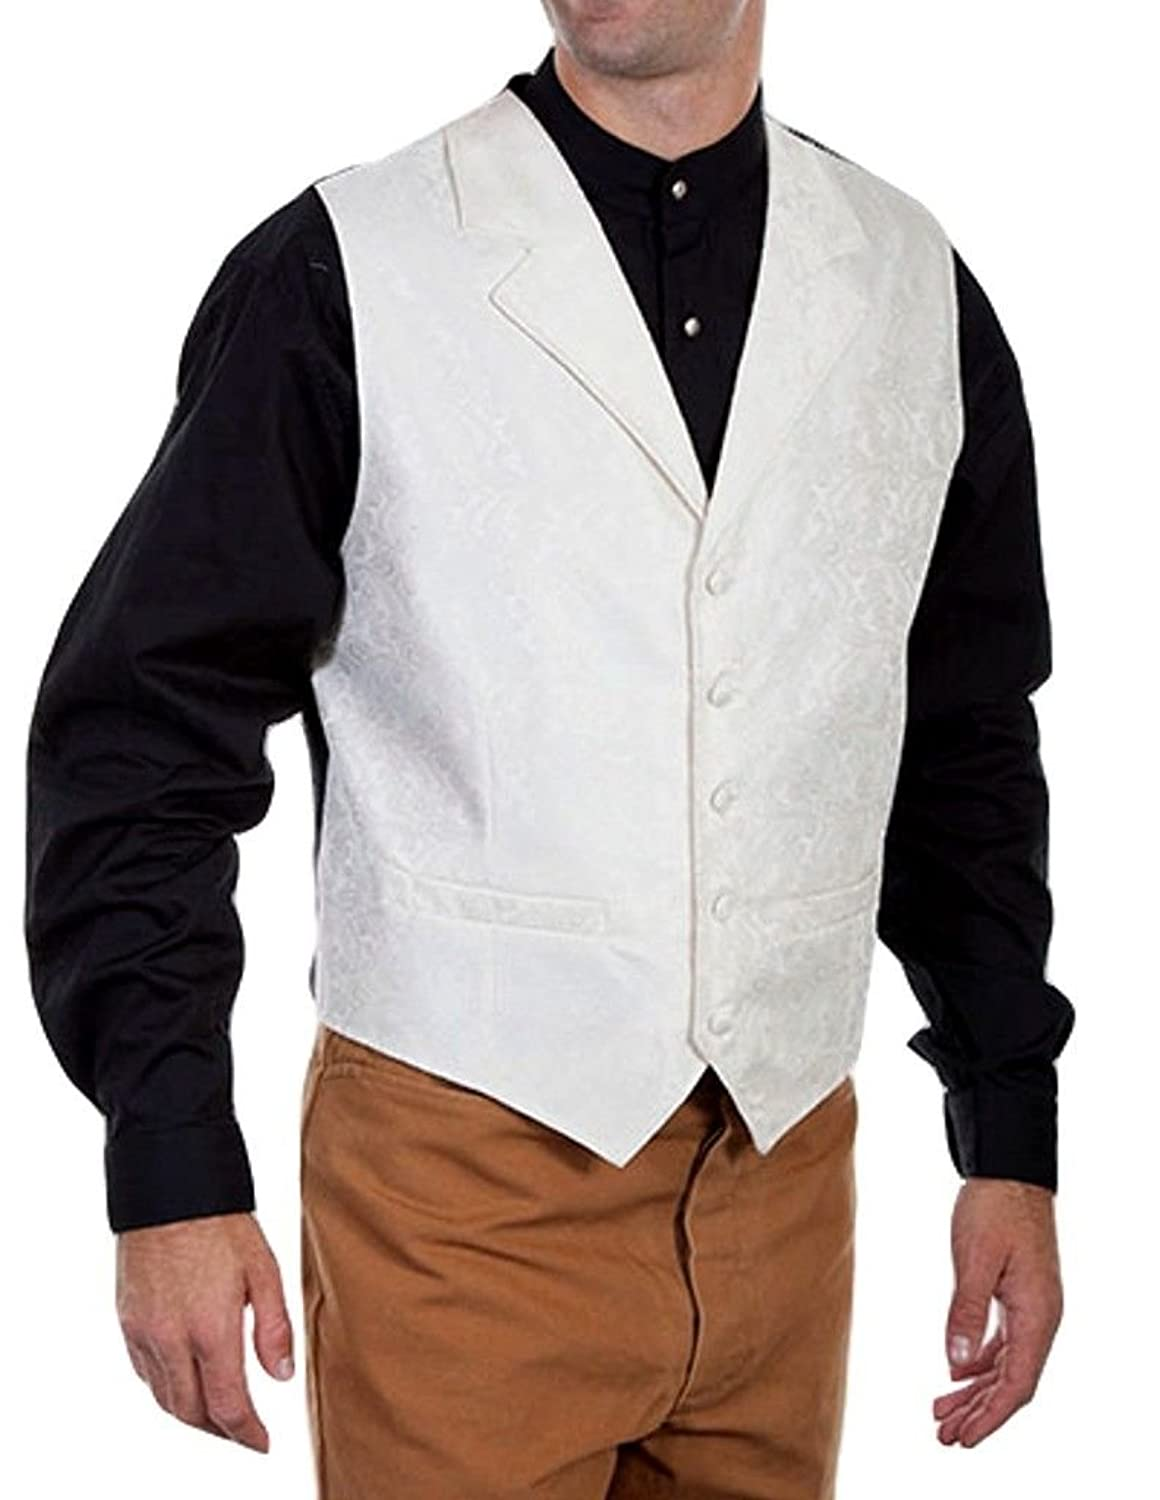 Victorian Men's Tuxedo, Tailcoats, Formalwear Guide Scully Mens Cream Paisley Vest - Rw093-Crm $62.41 AT vintagedancer.com